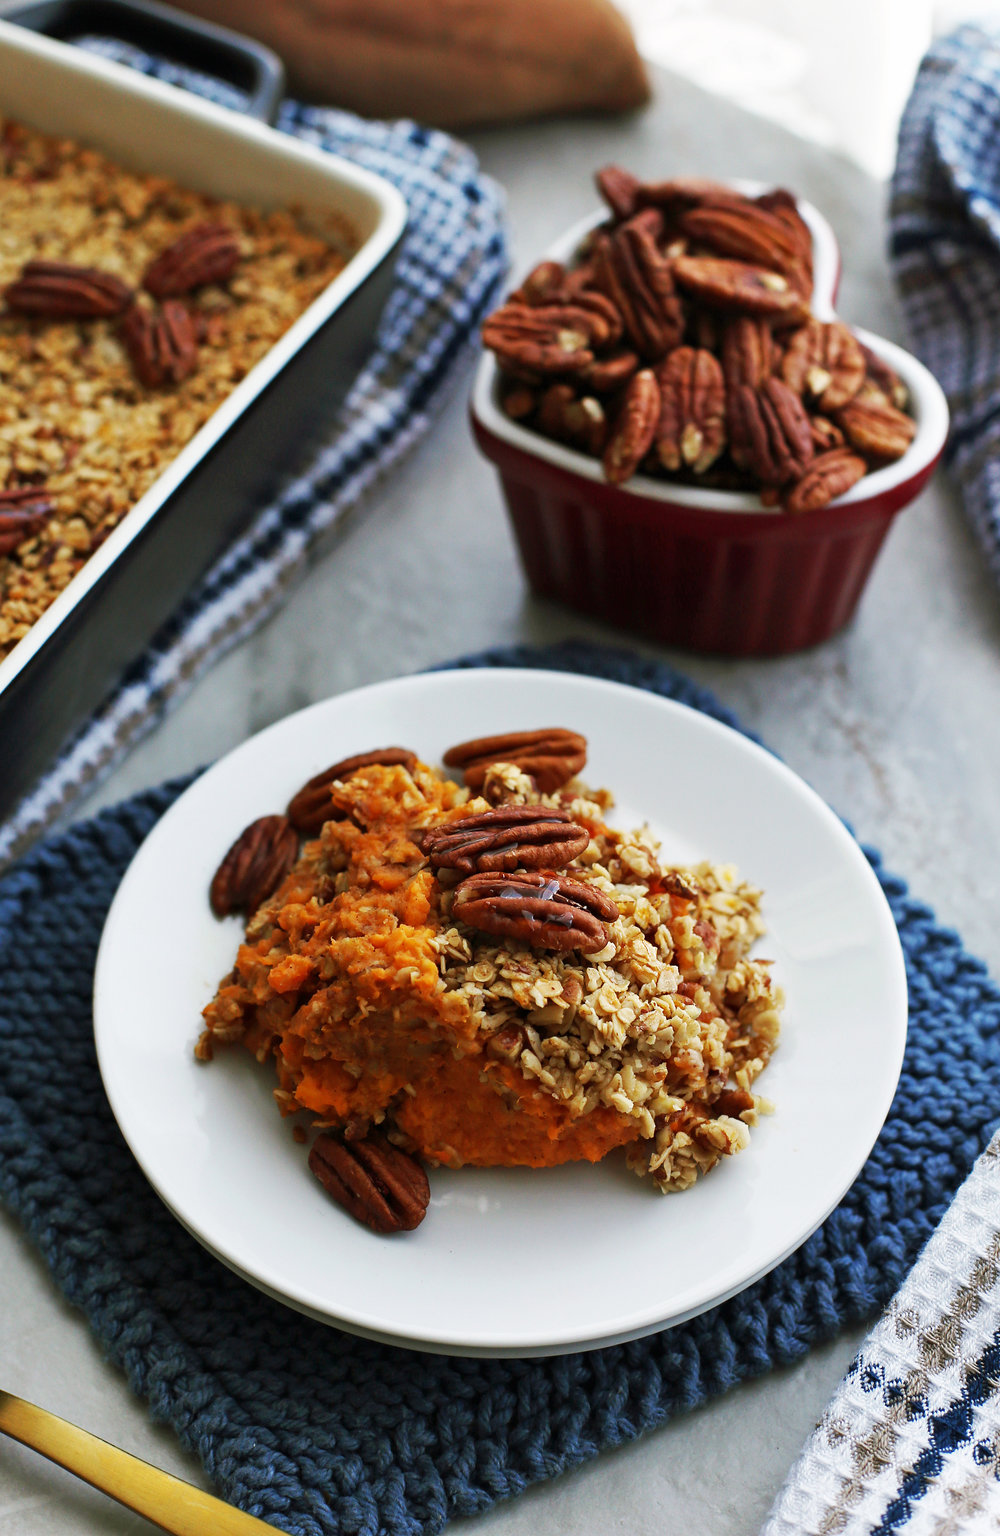 A Sweet Potato Mash with Pecan Oat Topping on a white plate.